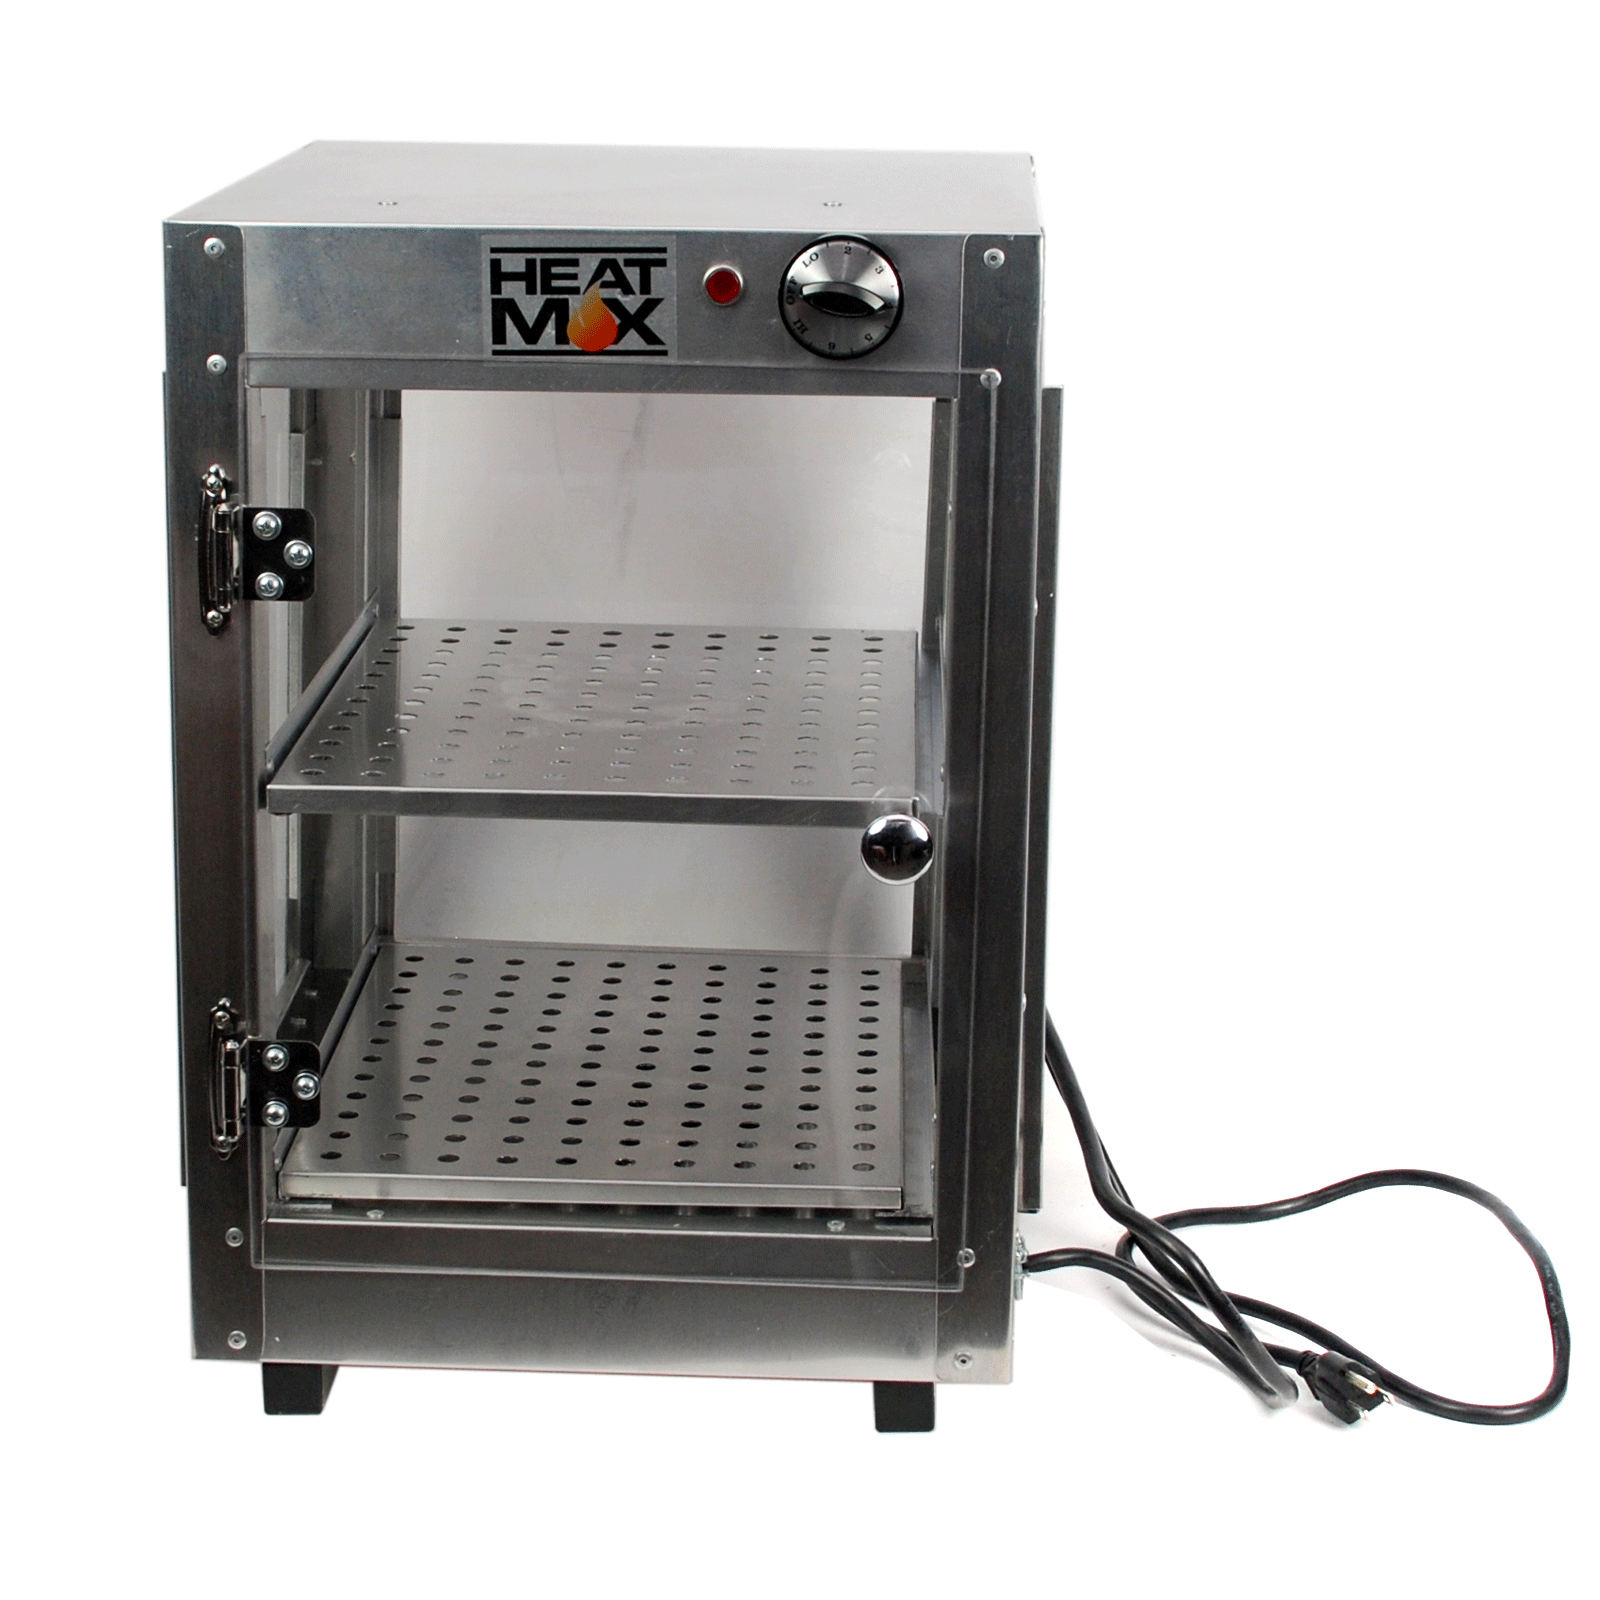 HeatMax Commercial Food Warmer Pizza Pastry Hot Countertop Display ...